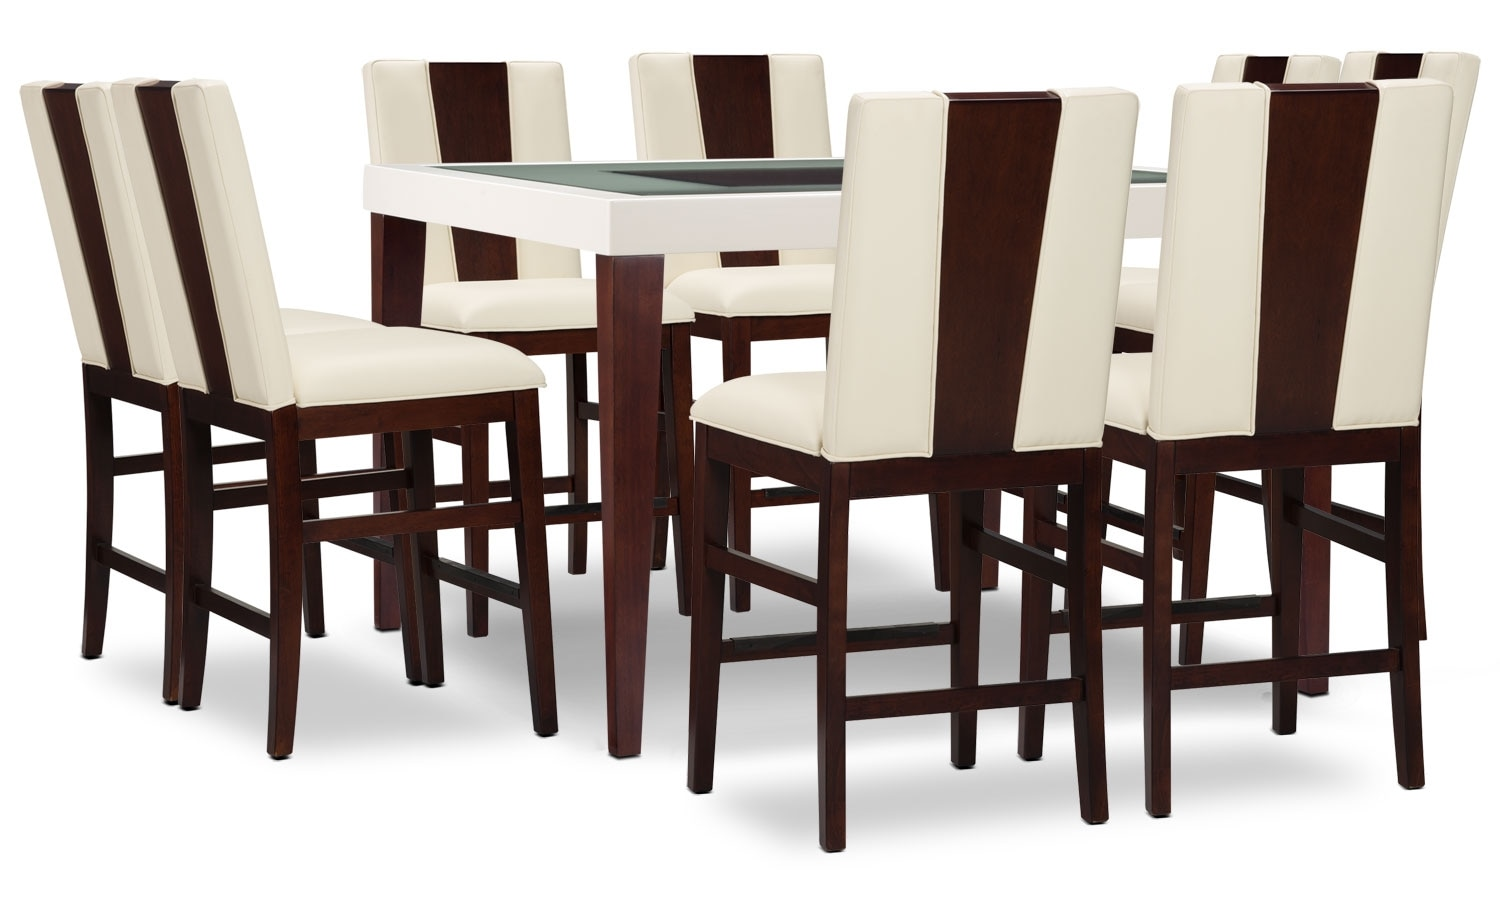 Zeno 9-Piece Counter-Height Dining Package with Wood Back Chair